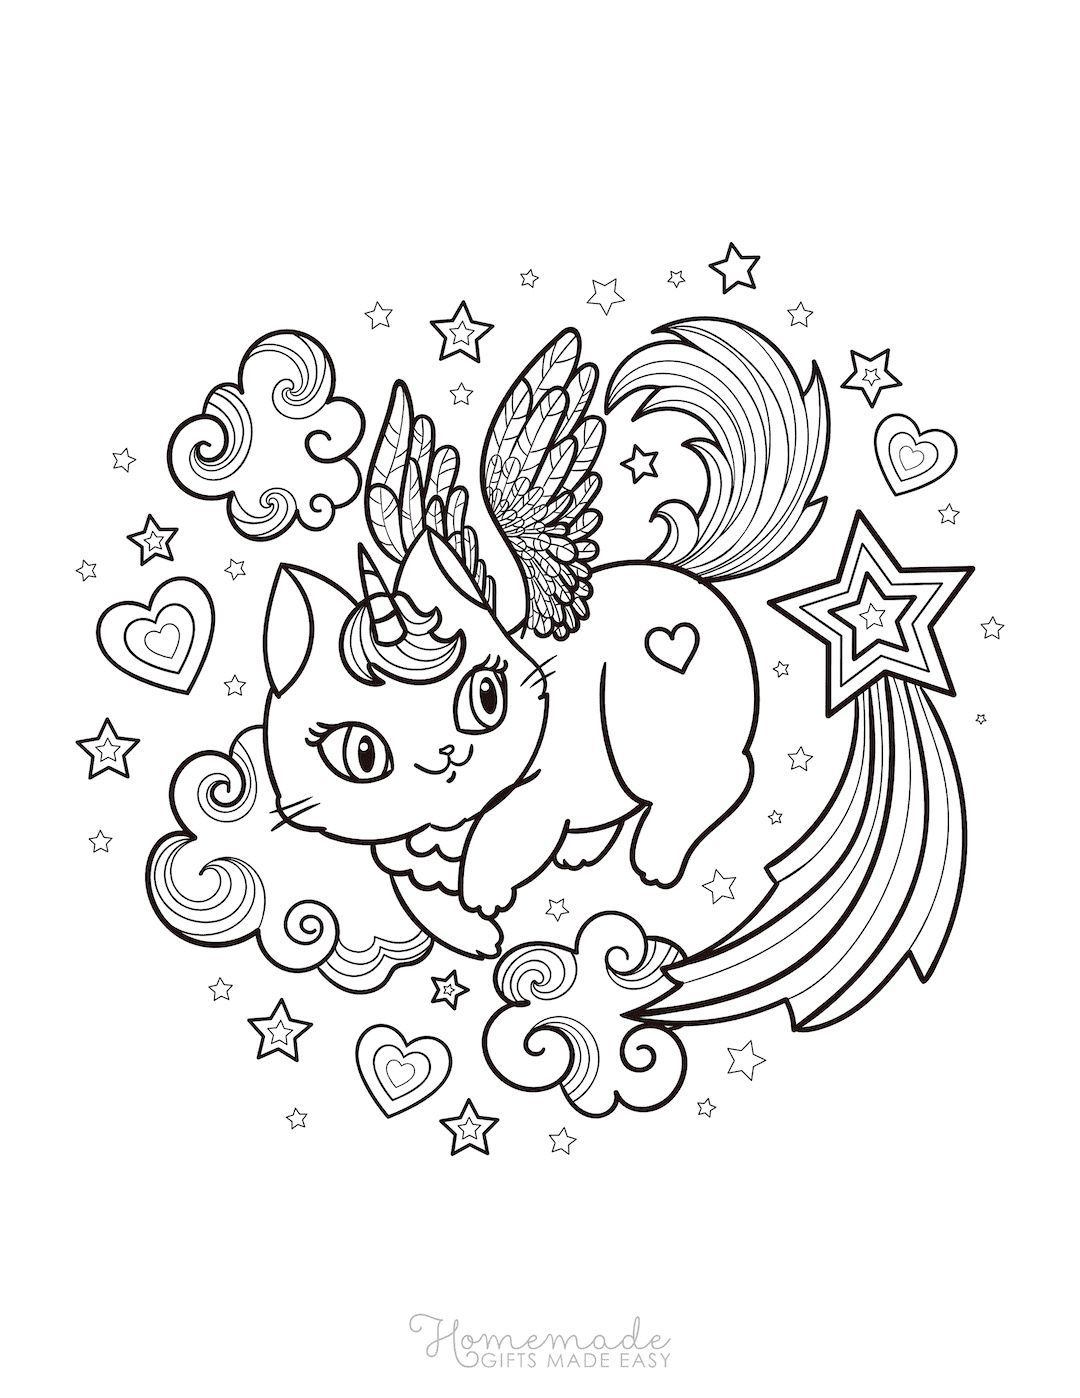 75 Magical Unicorn Coloring Pages For Kids Adults Free Printables Unicorn Coloring Pages Star Coloring Pages Coloring Pages